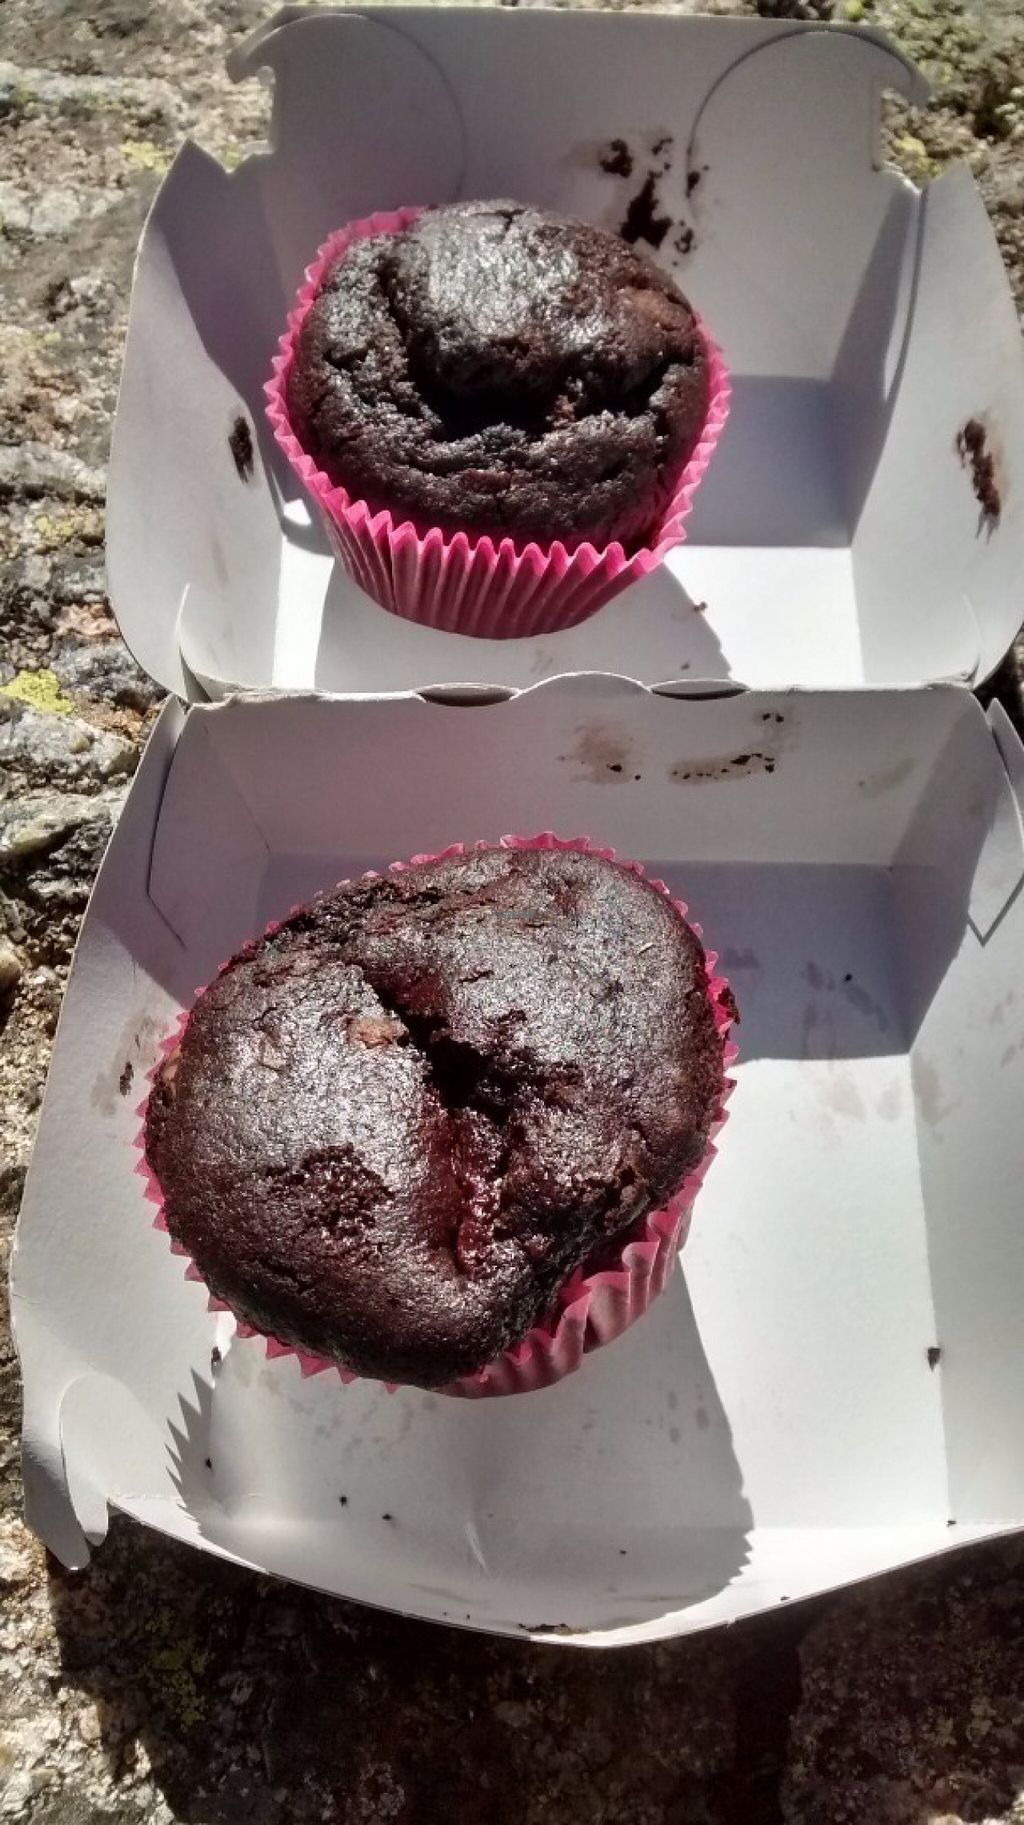 """Photo of CLOSED: Rocky Road Burgers  by <a href=""""/members/profile/JonJon"""">JonJon</a> <br/>Chocolate-cherry muffins <br/> August 8, 2016  - <a href='/contact/abuse/image/63980/166907'>Report</a>"""